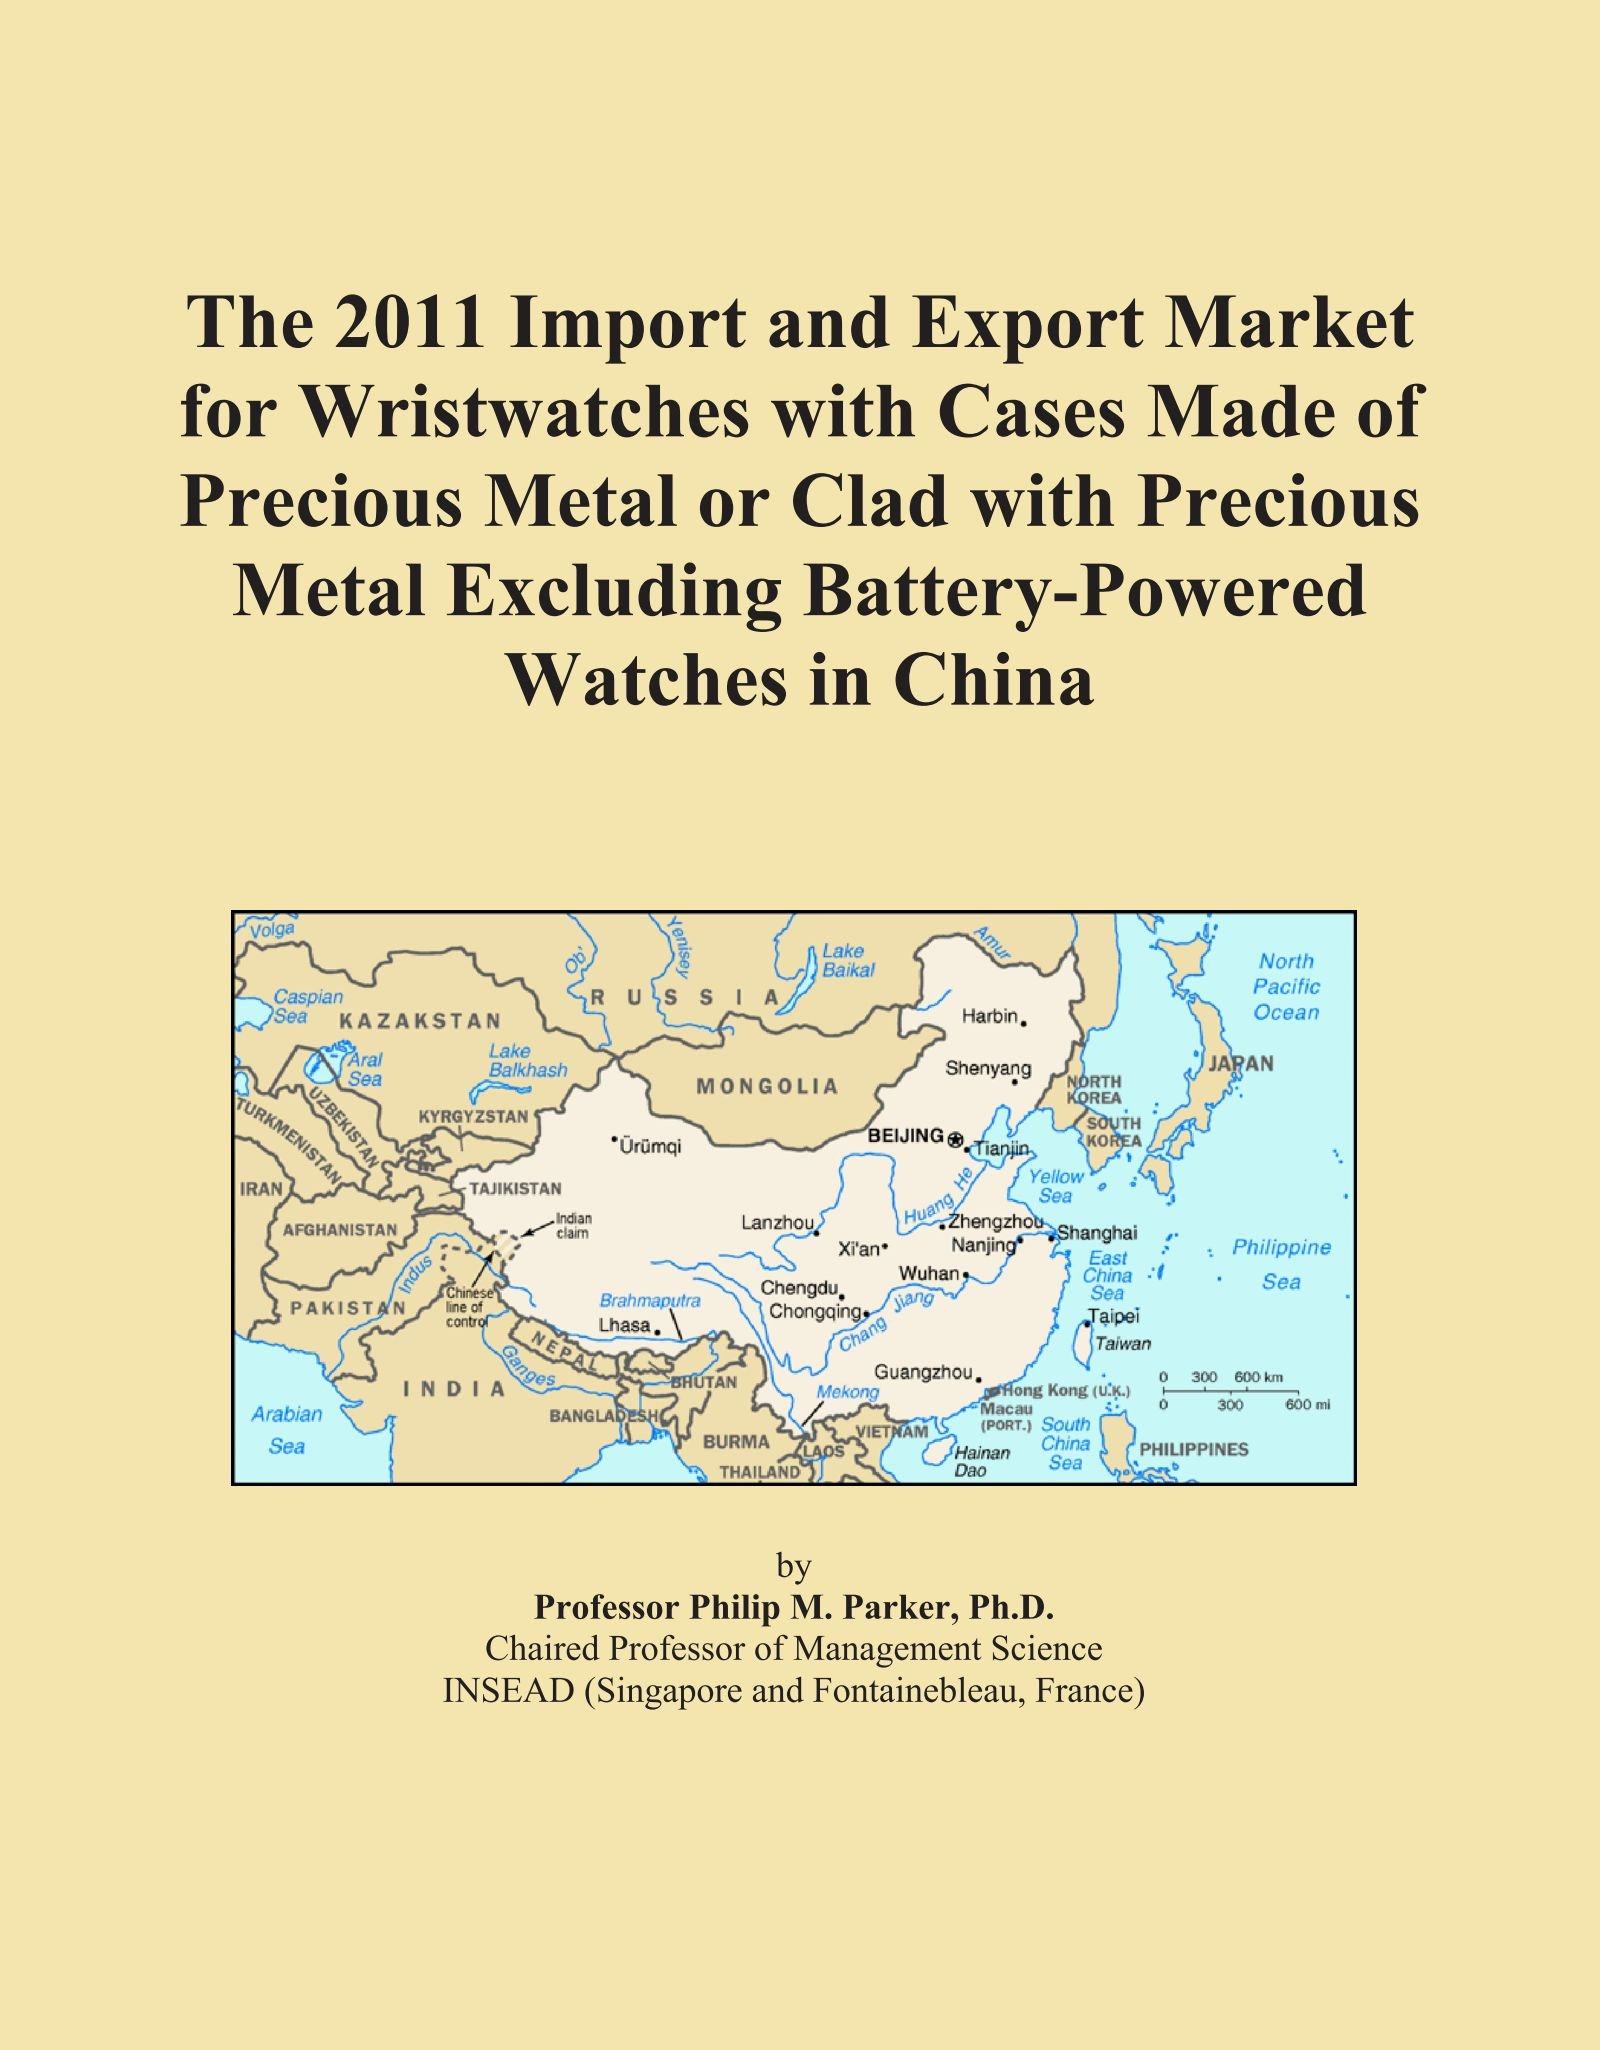 The 2011 Import and Export Market for Wristwatches with Cases Made of Precious Metal or Clad with Precious Metal Excluding Battery-Powered Watches in China ebook